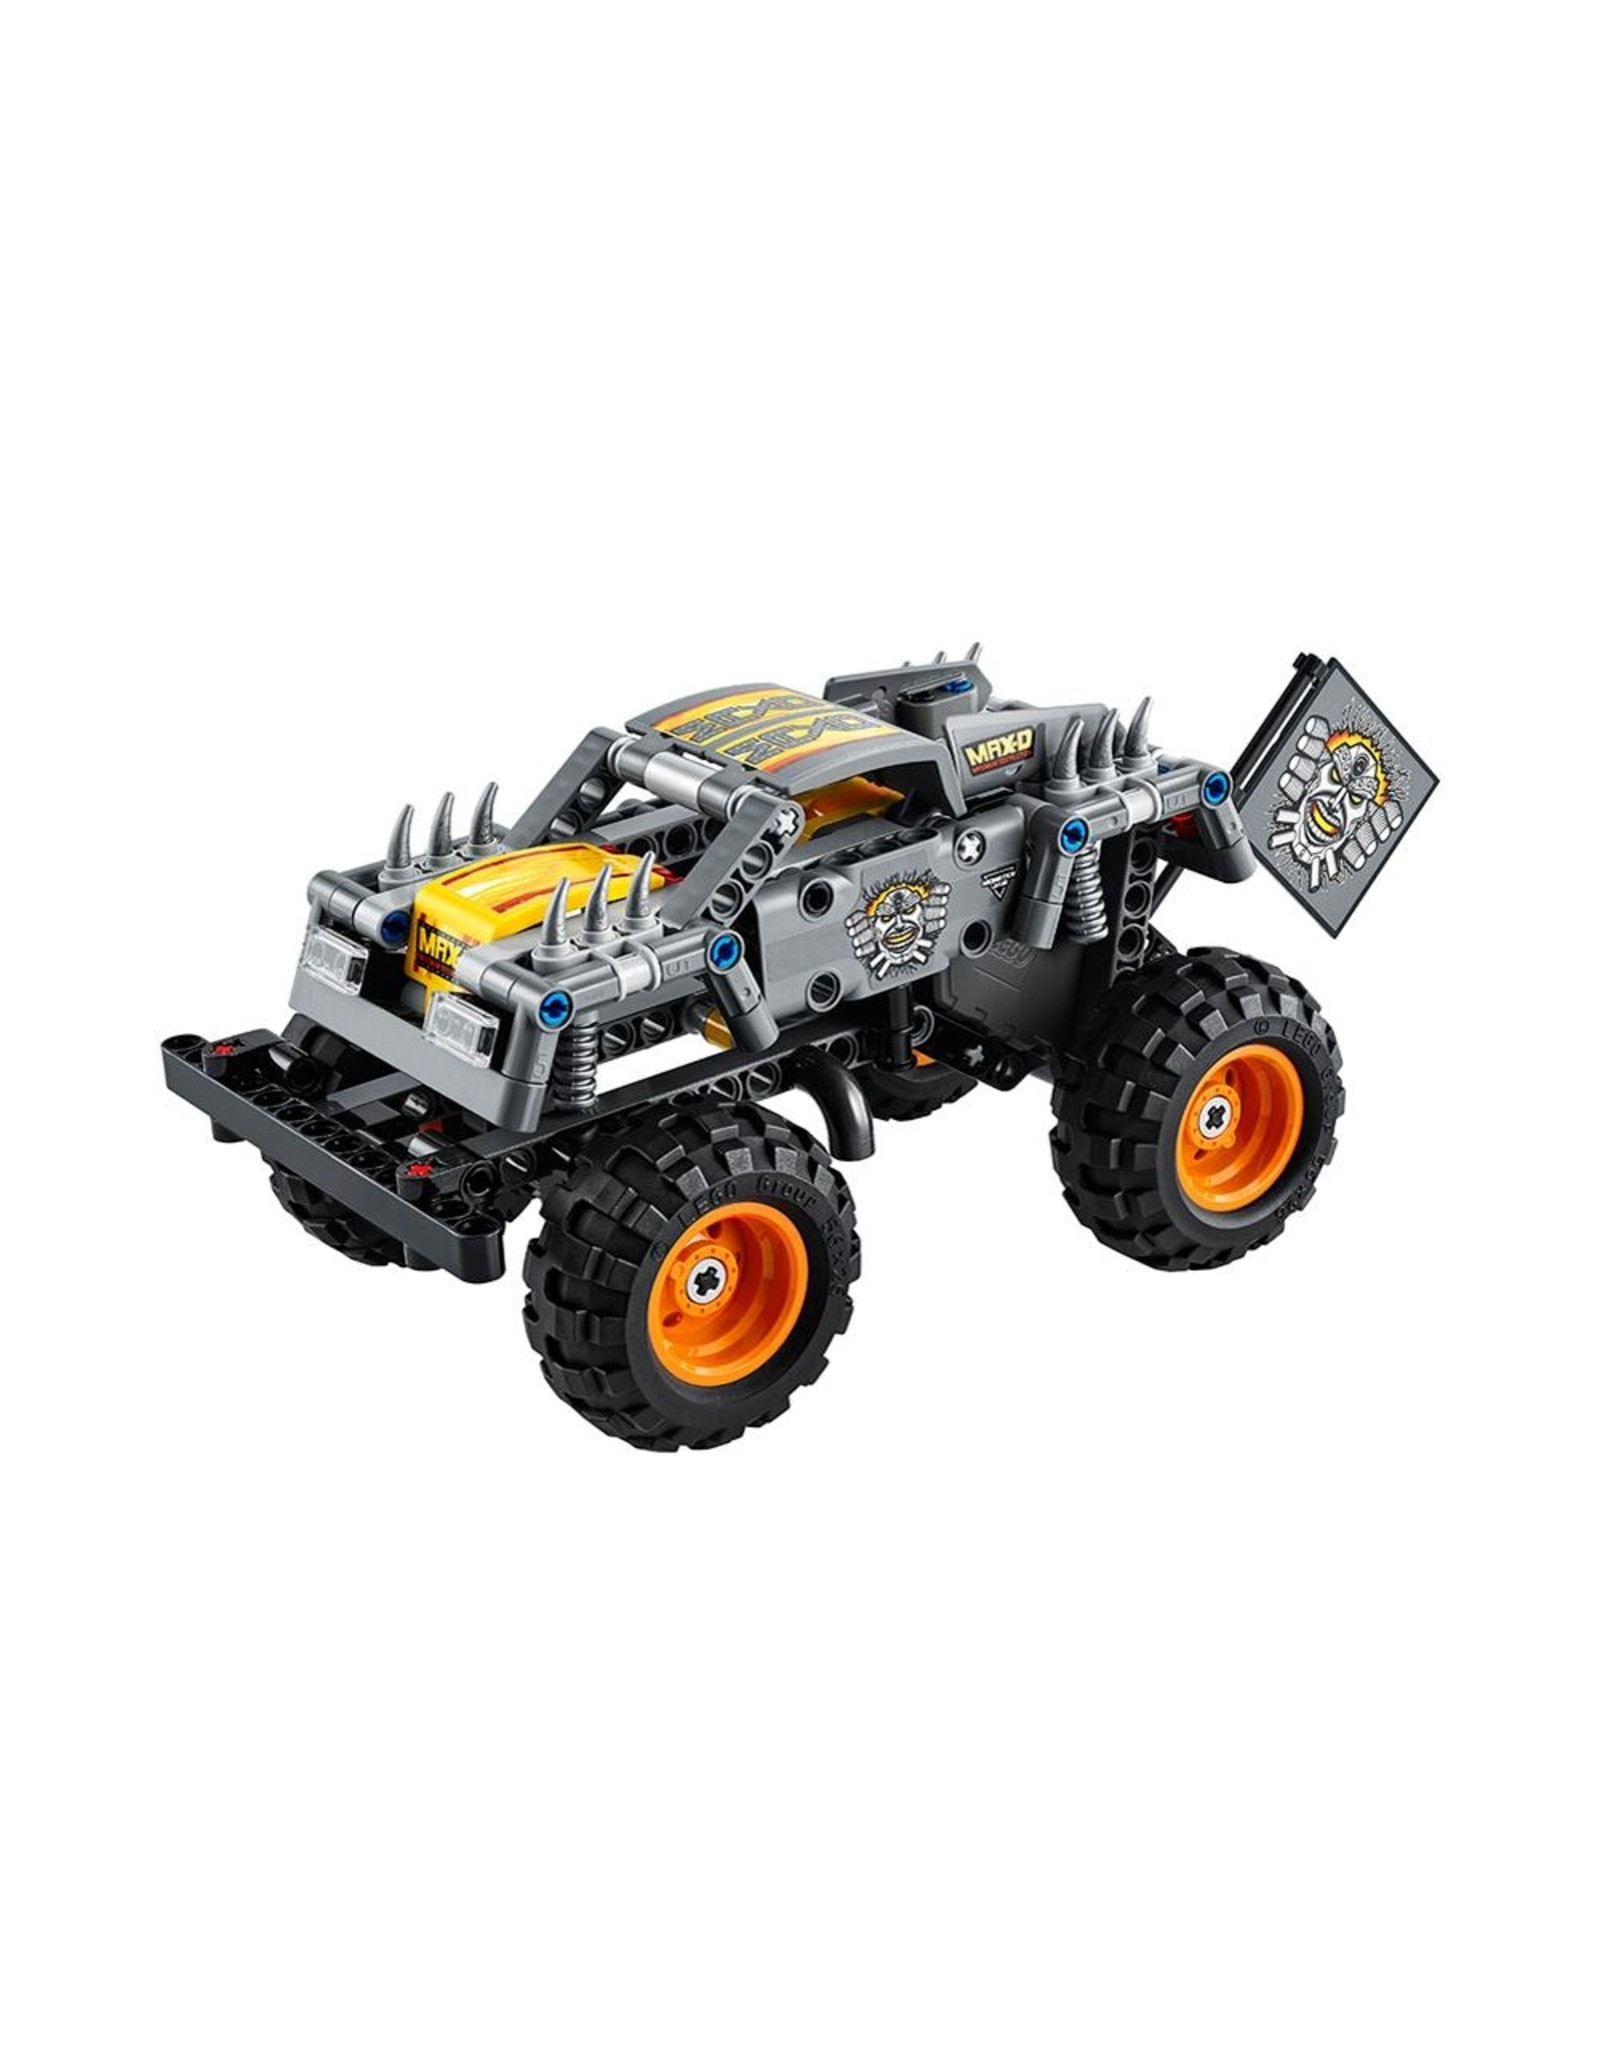 LEGO Technic 42119 Monster Jam - Max-D